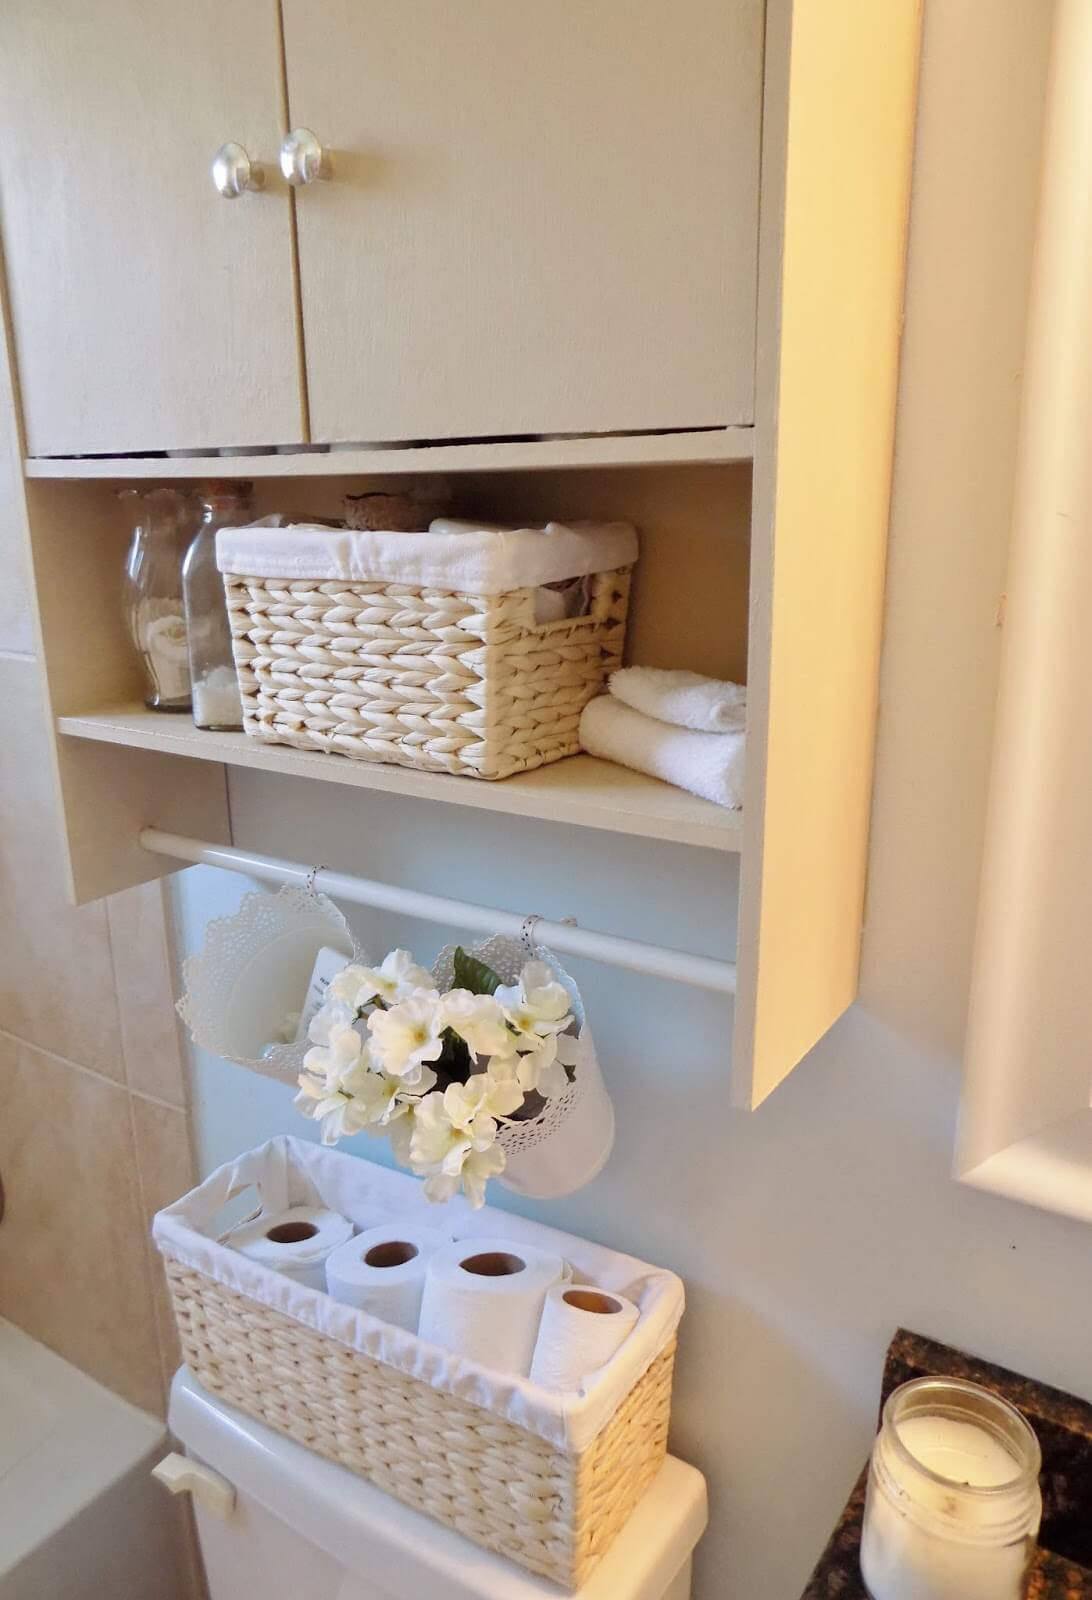 Over-the-Toilet Storage Cabinet with Baskets